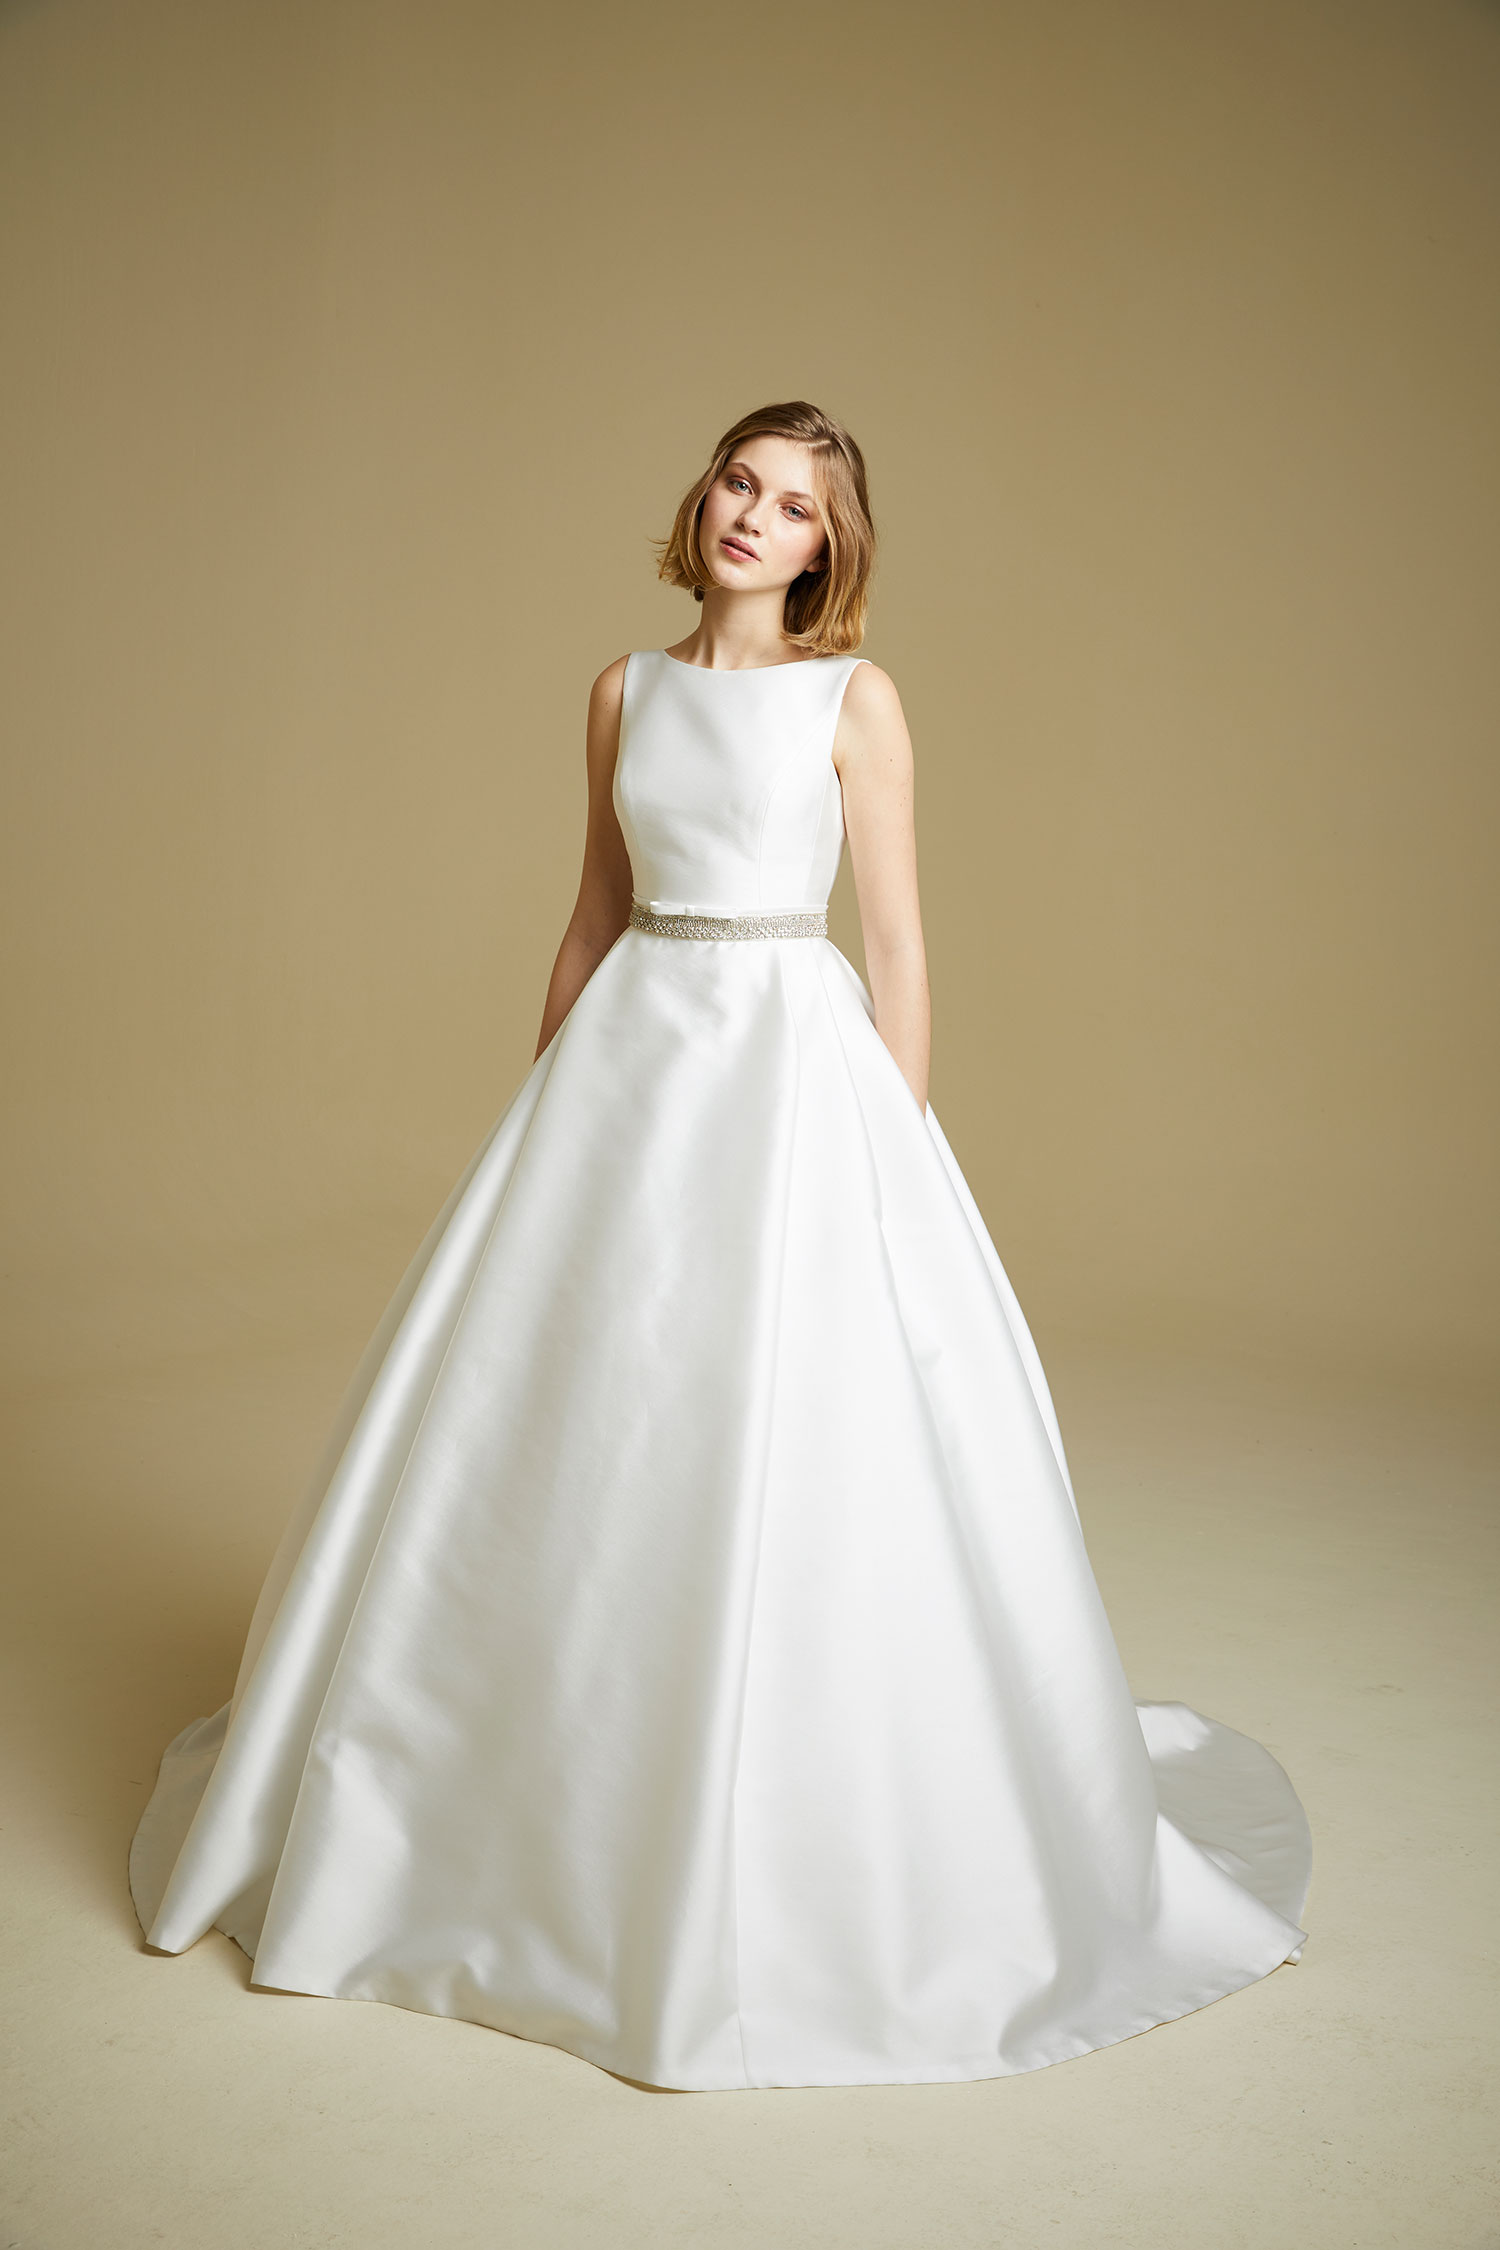 Jesus Peiro Wedding Dresses At Miss Bush Bridal Boutique